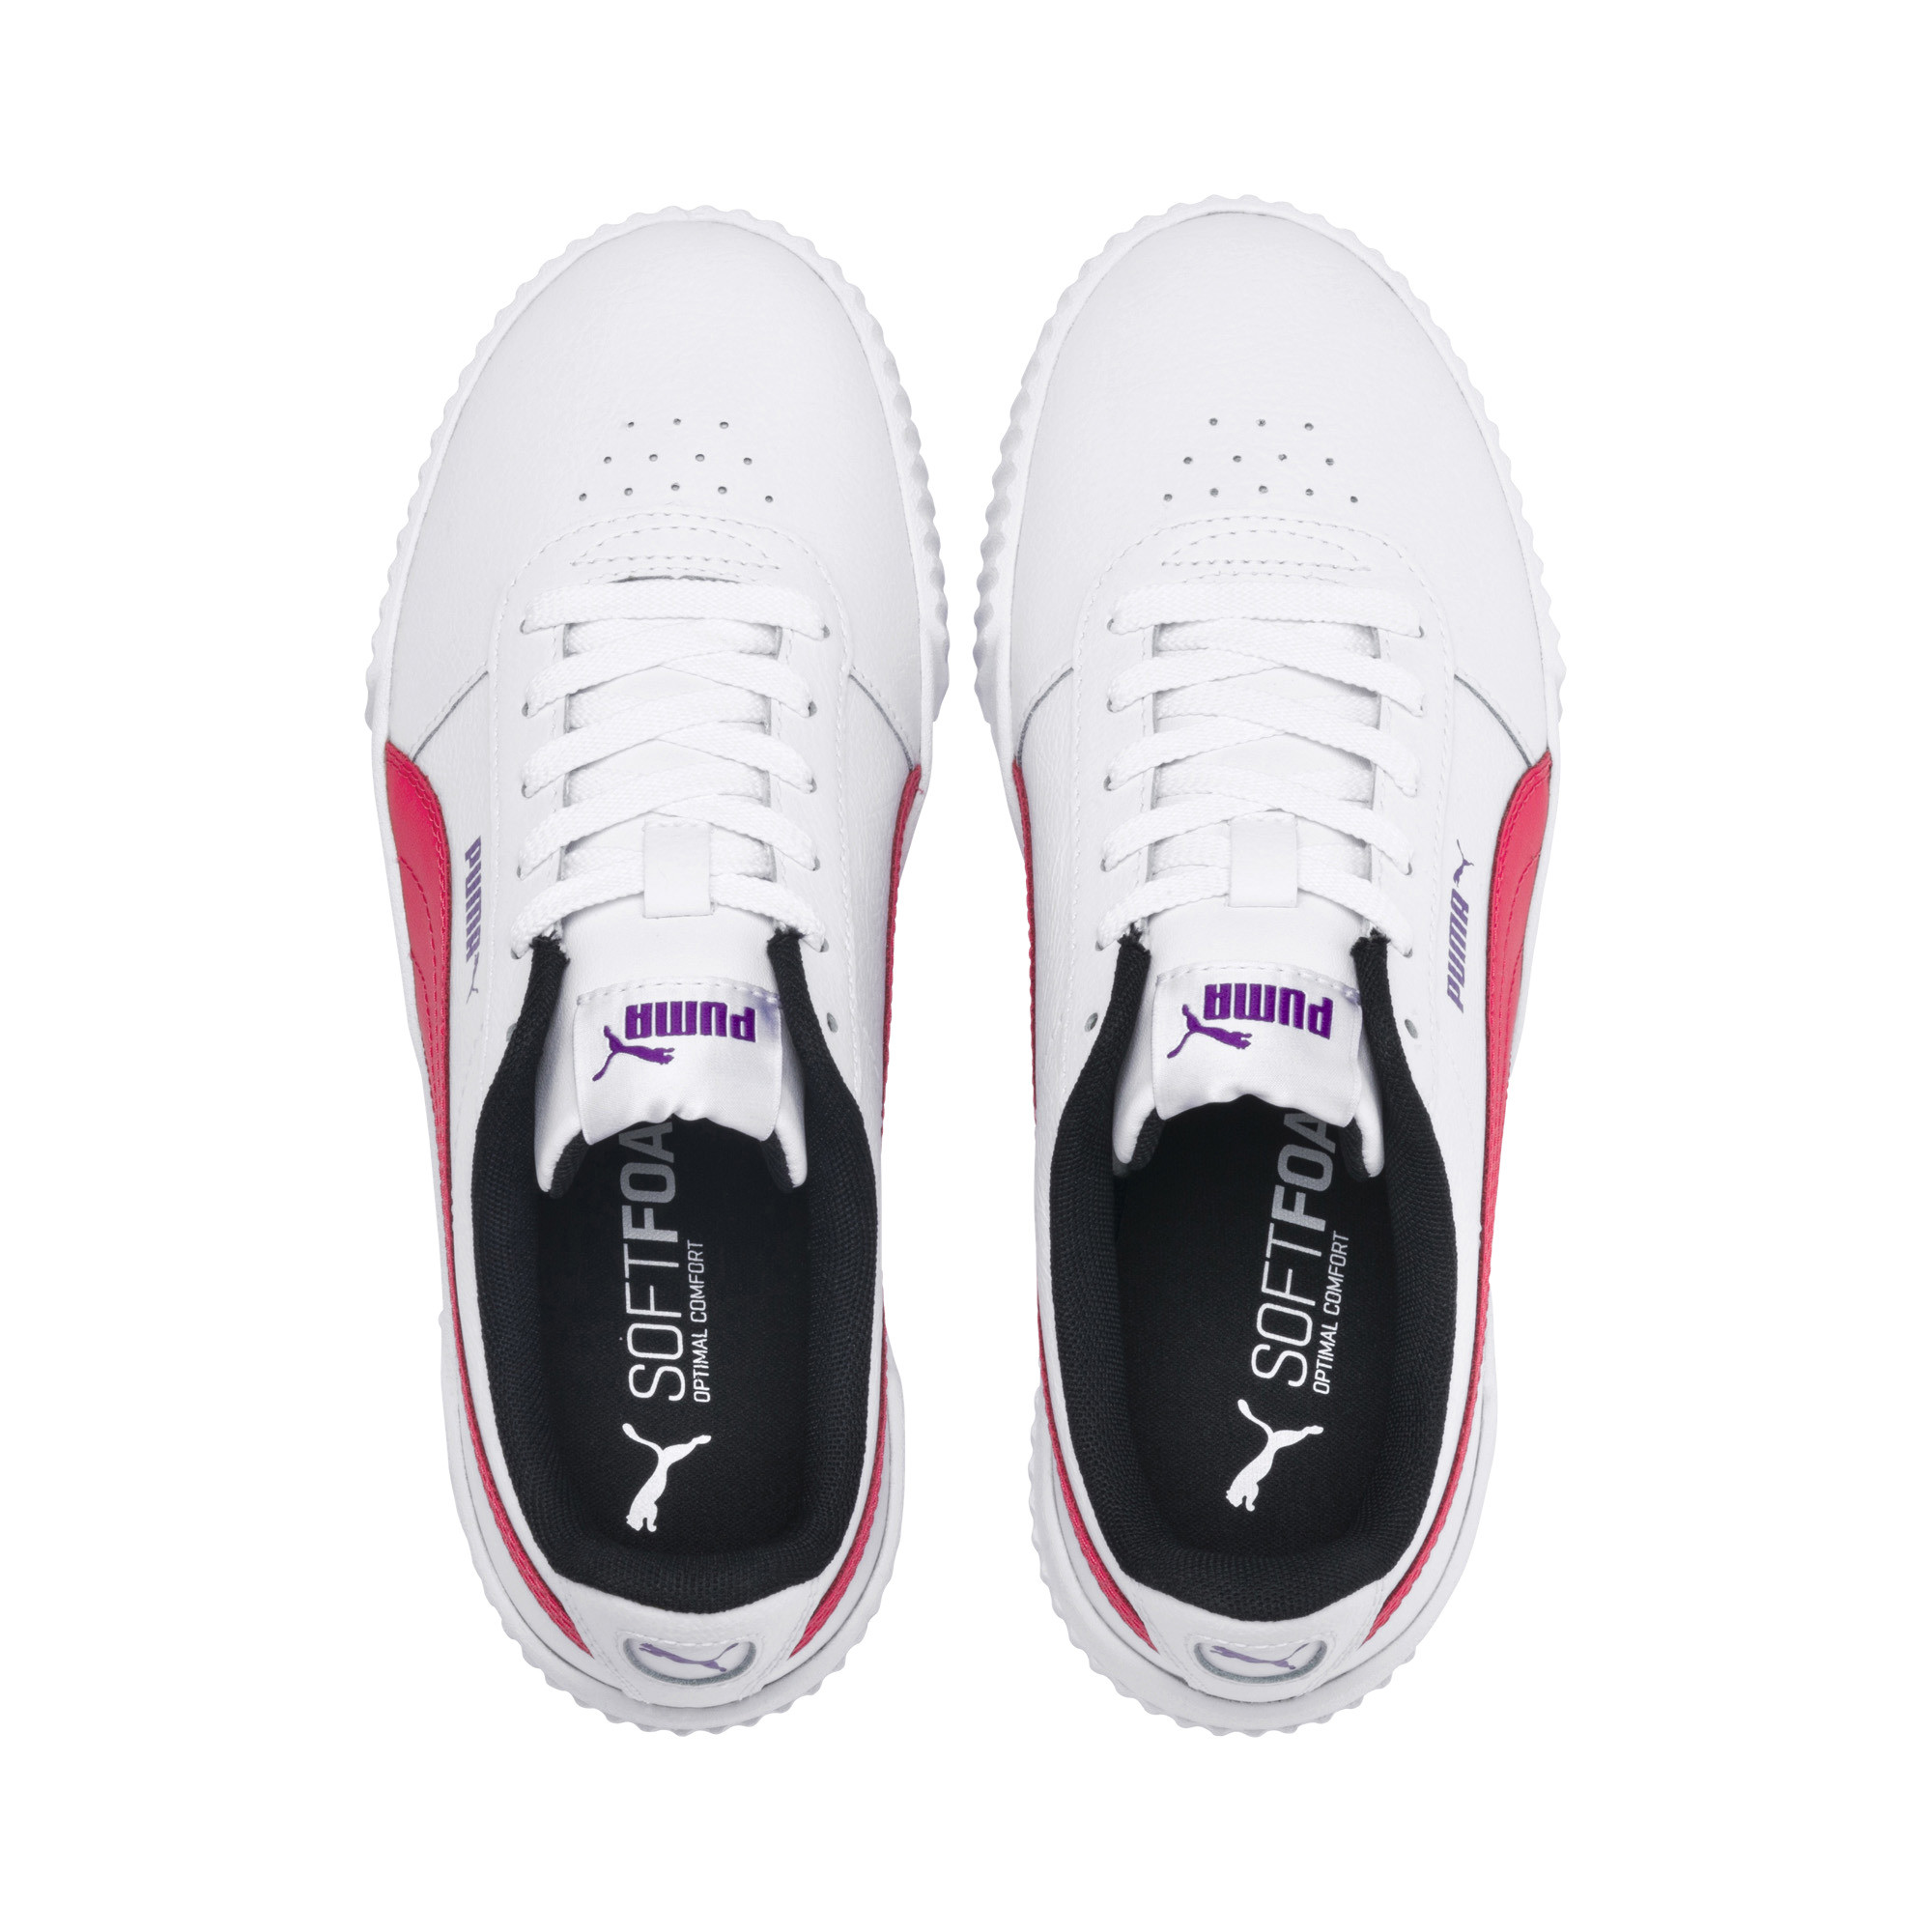 PUMA-Carina-Leather-Women-s-Sneakers-Women-Shoe-Basics thumbnail 20